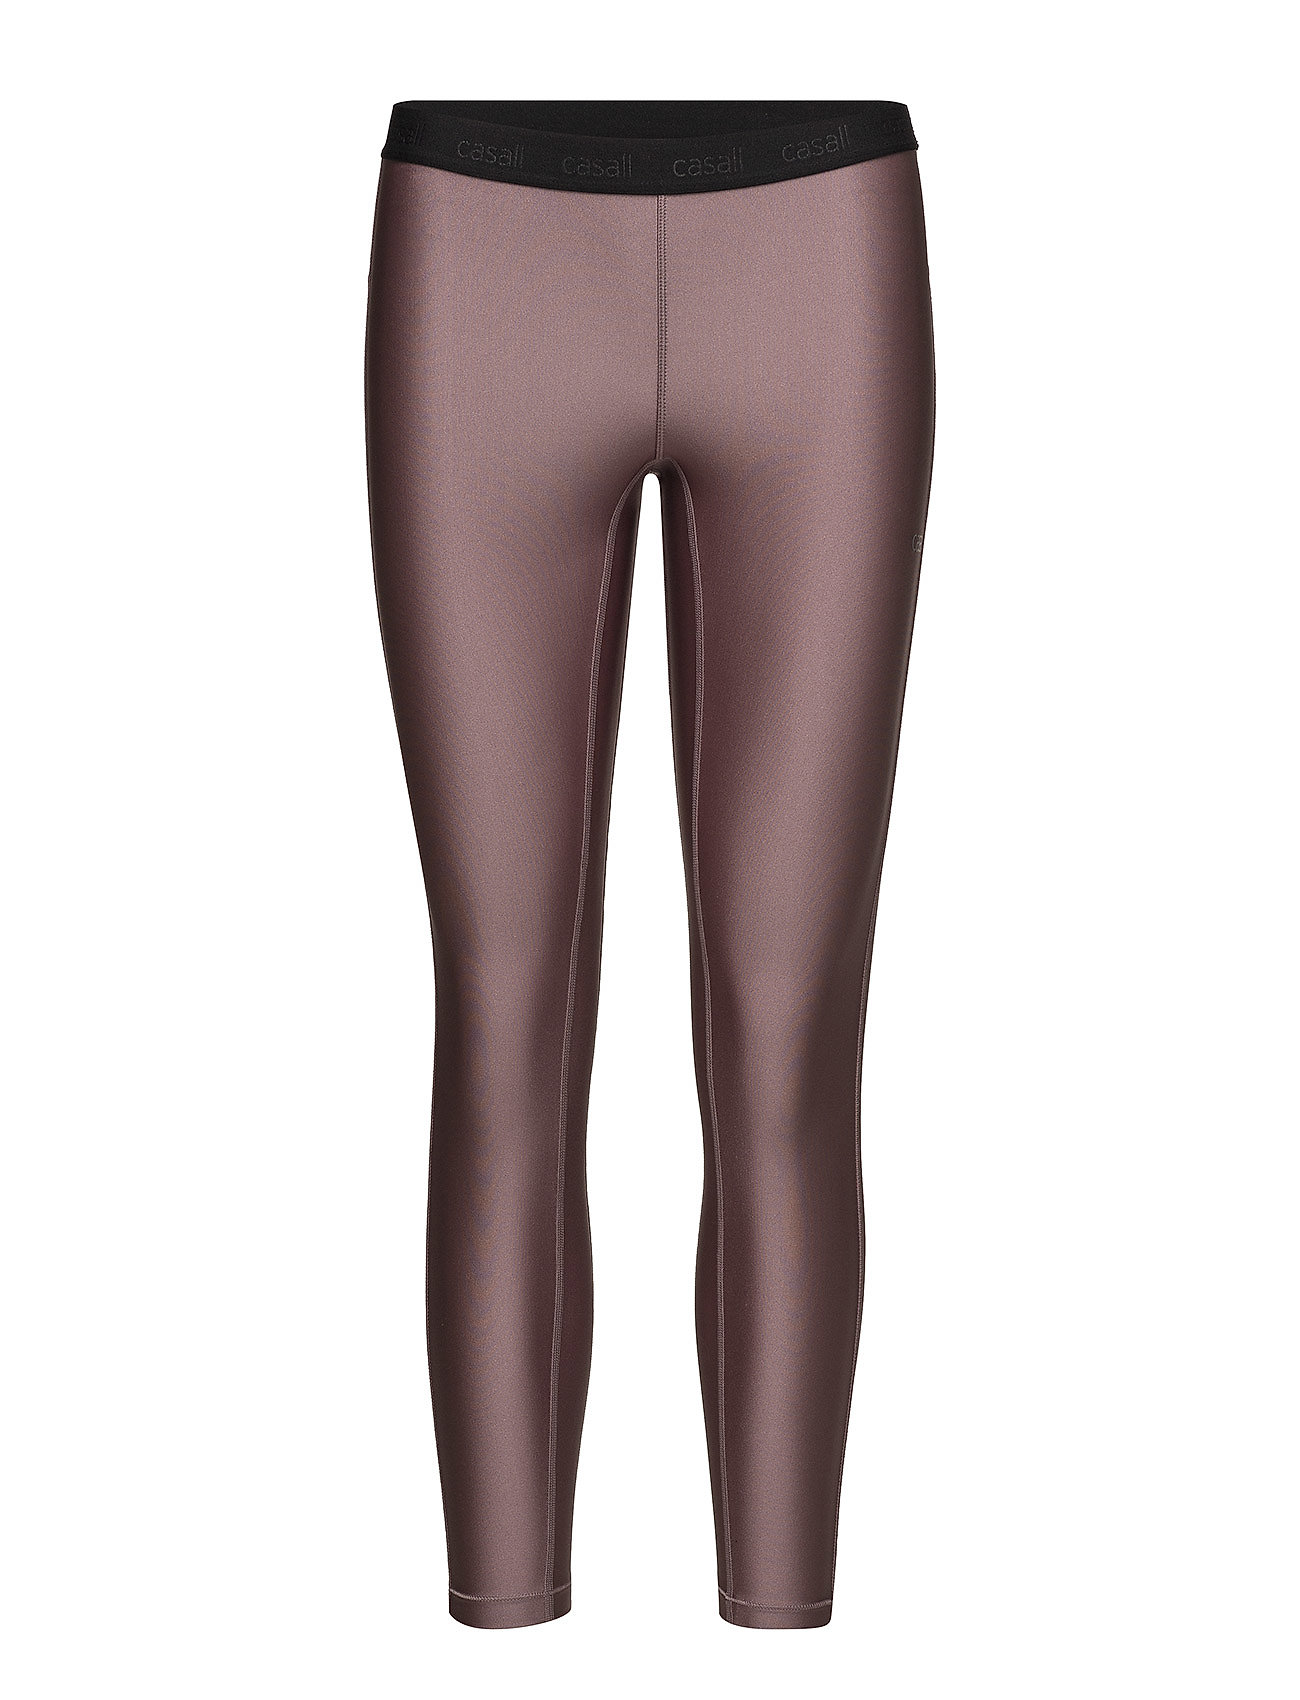 Casall Raw elastic 7/8 tights - BERRY METALLIC